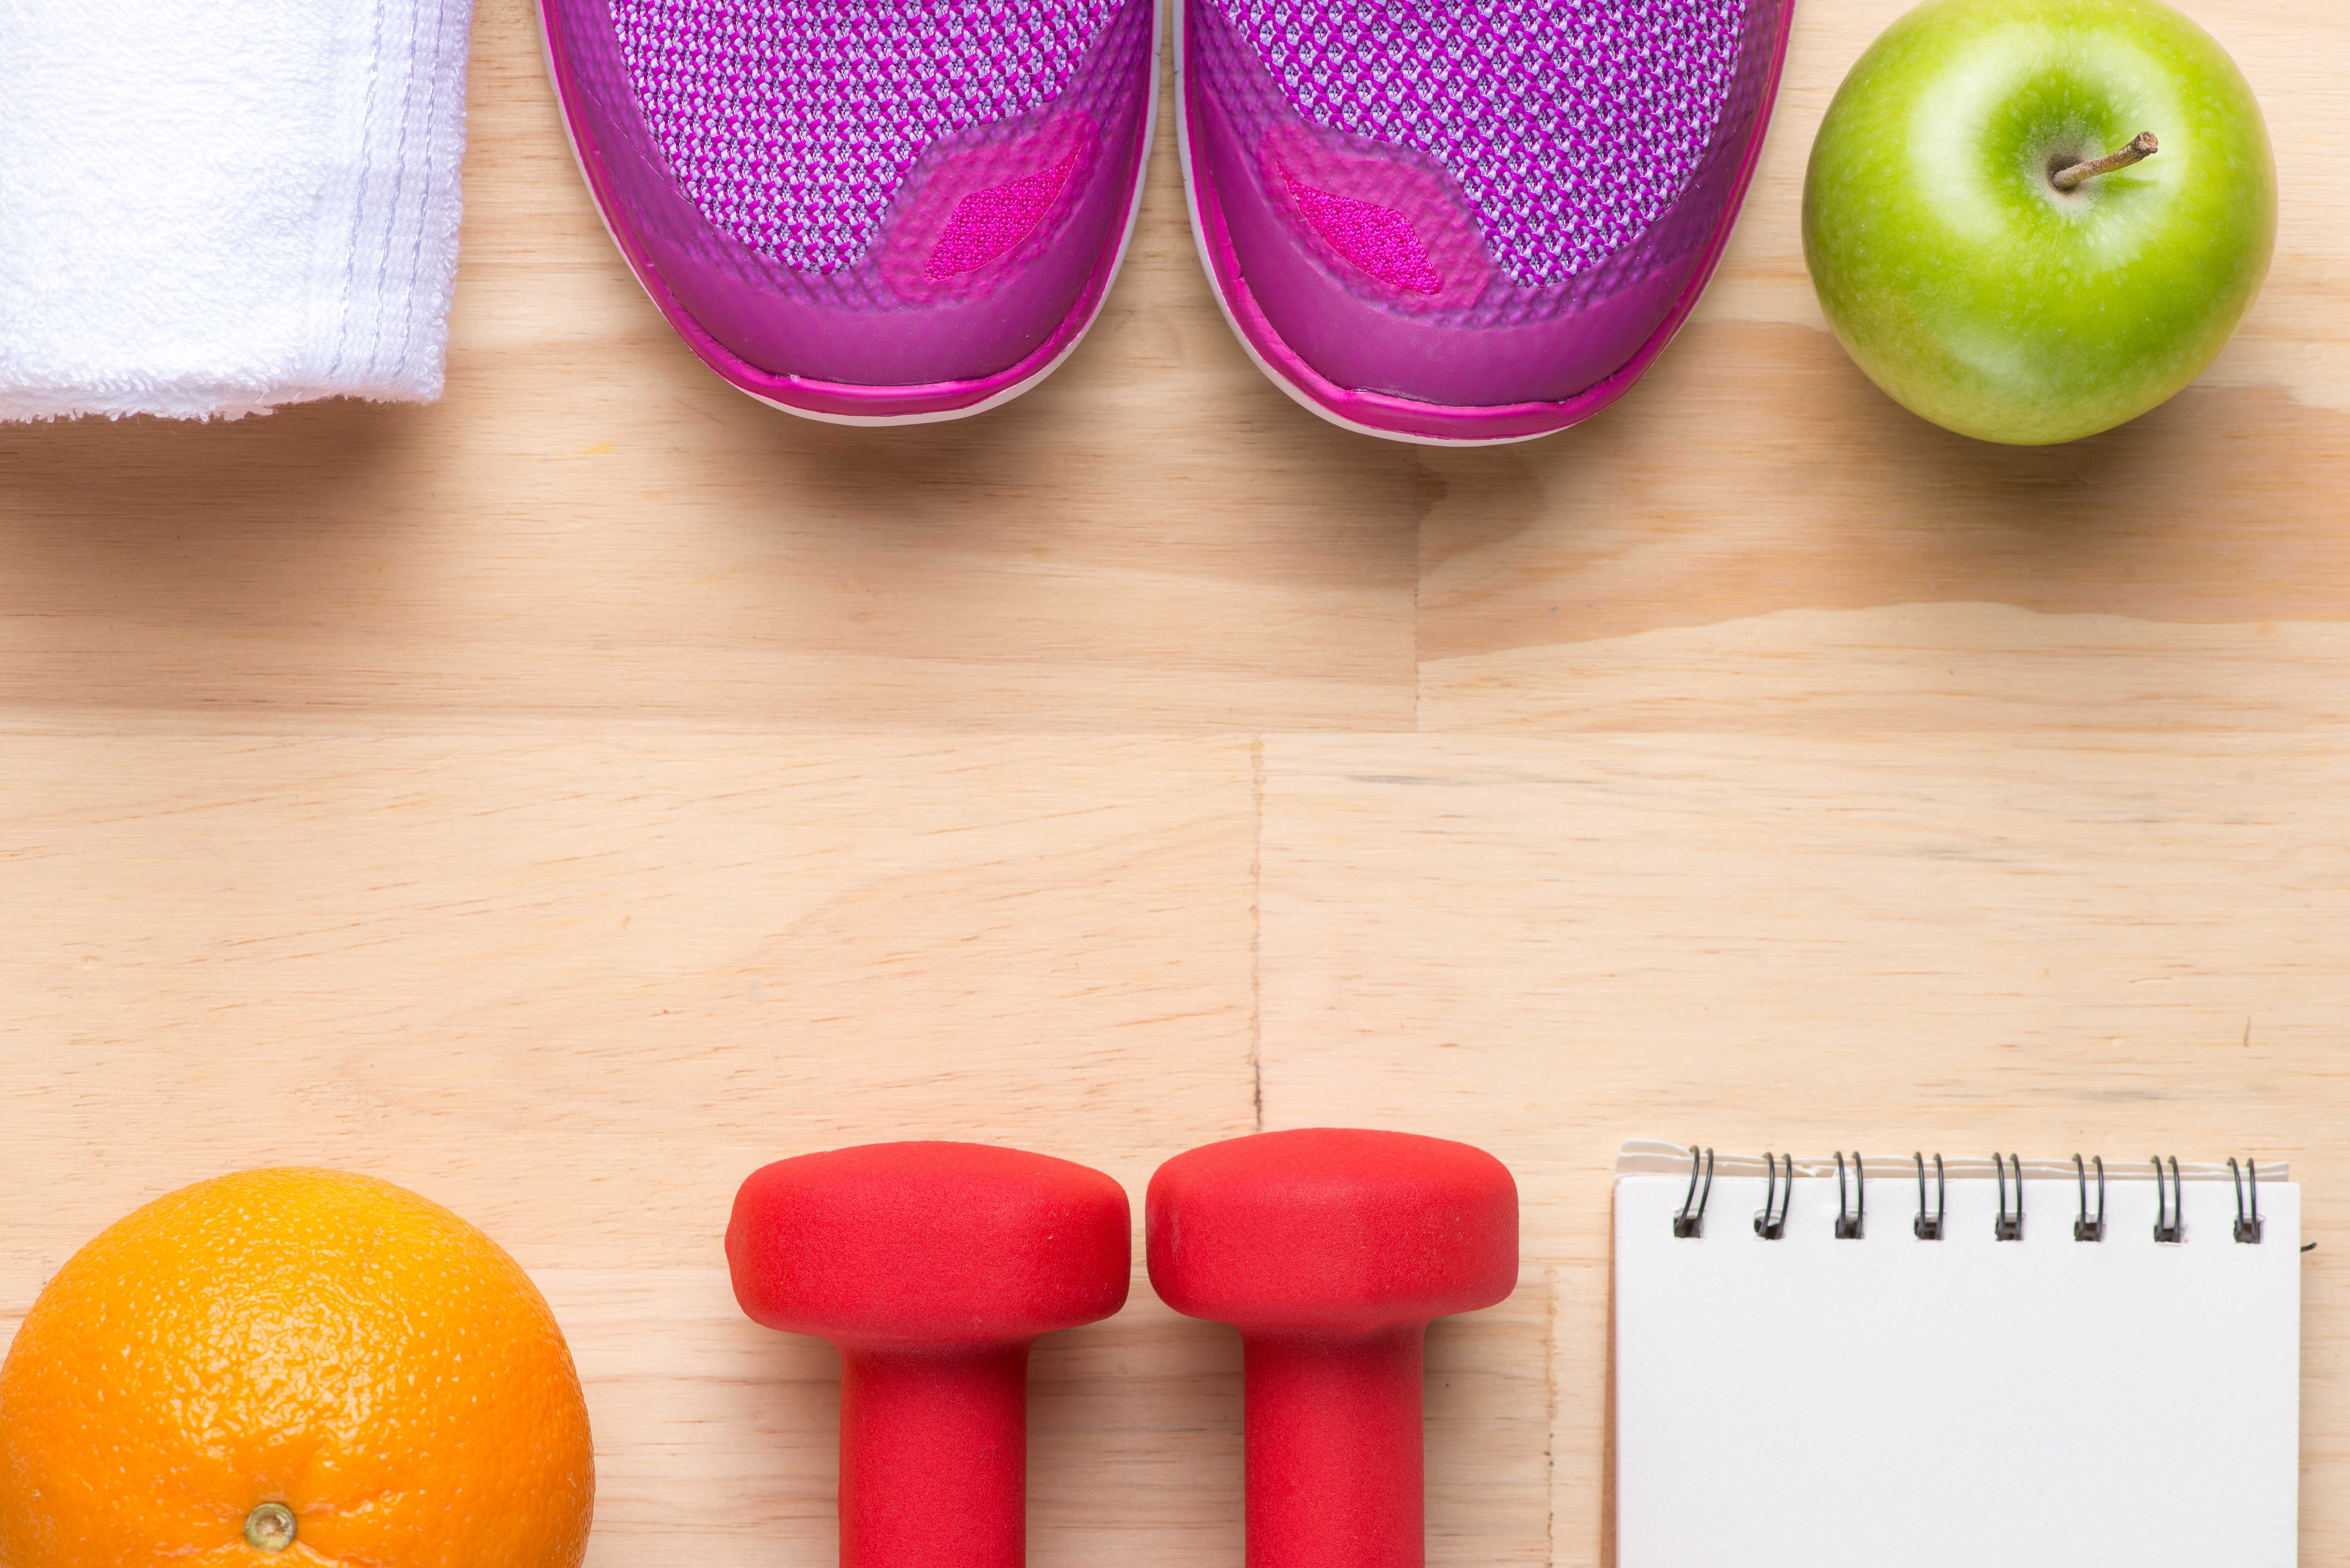 Employees happy with wellness program results